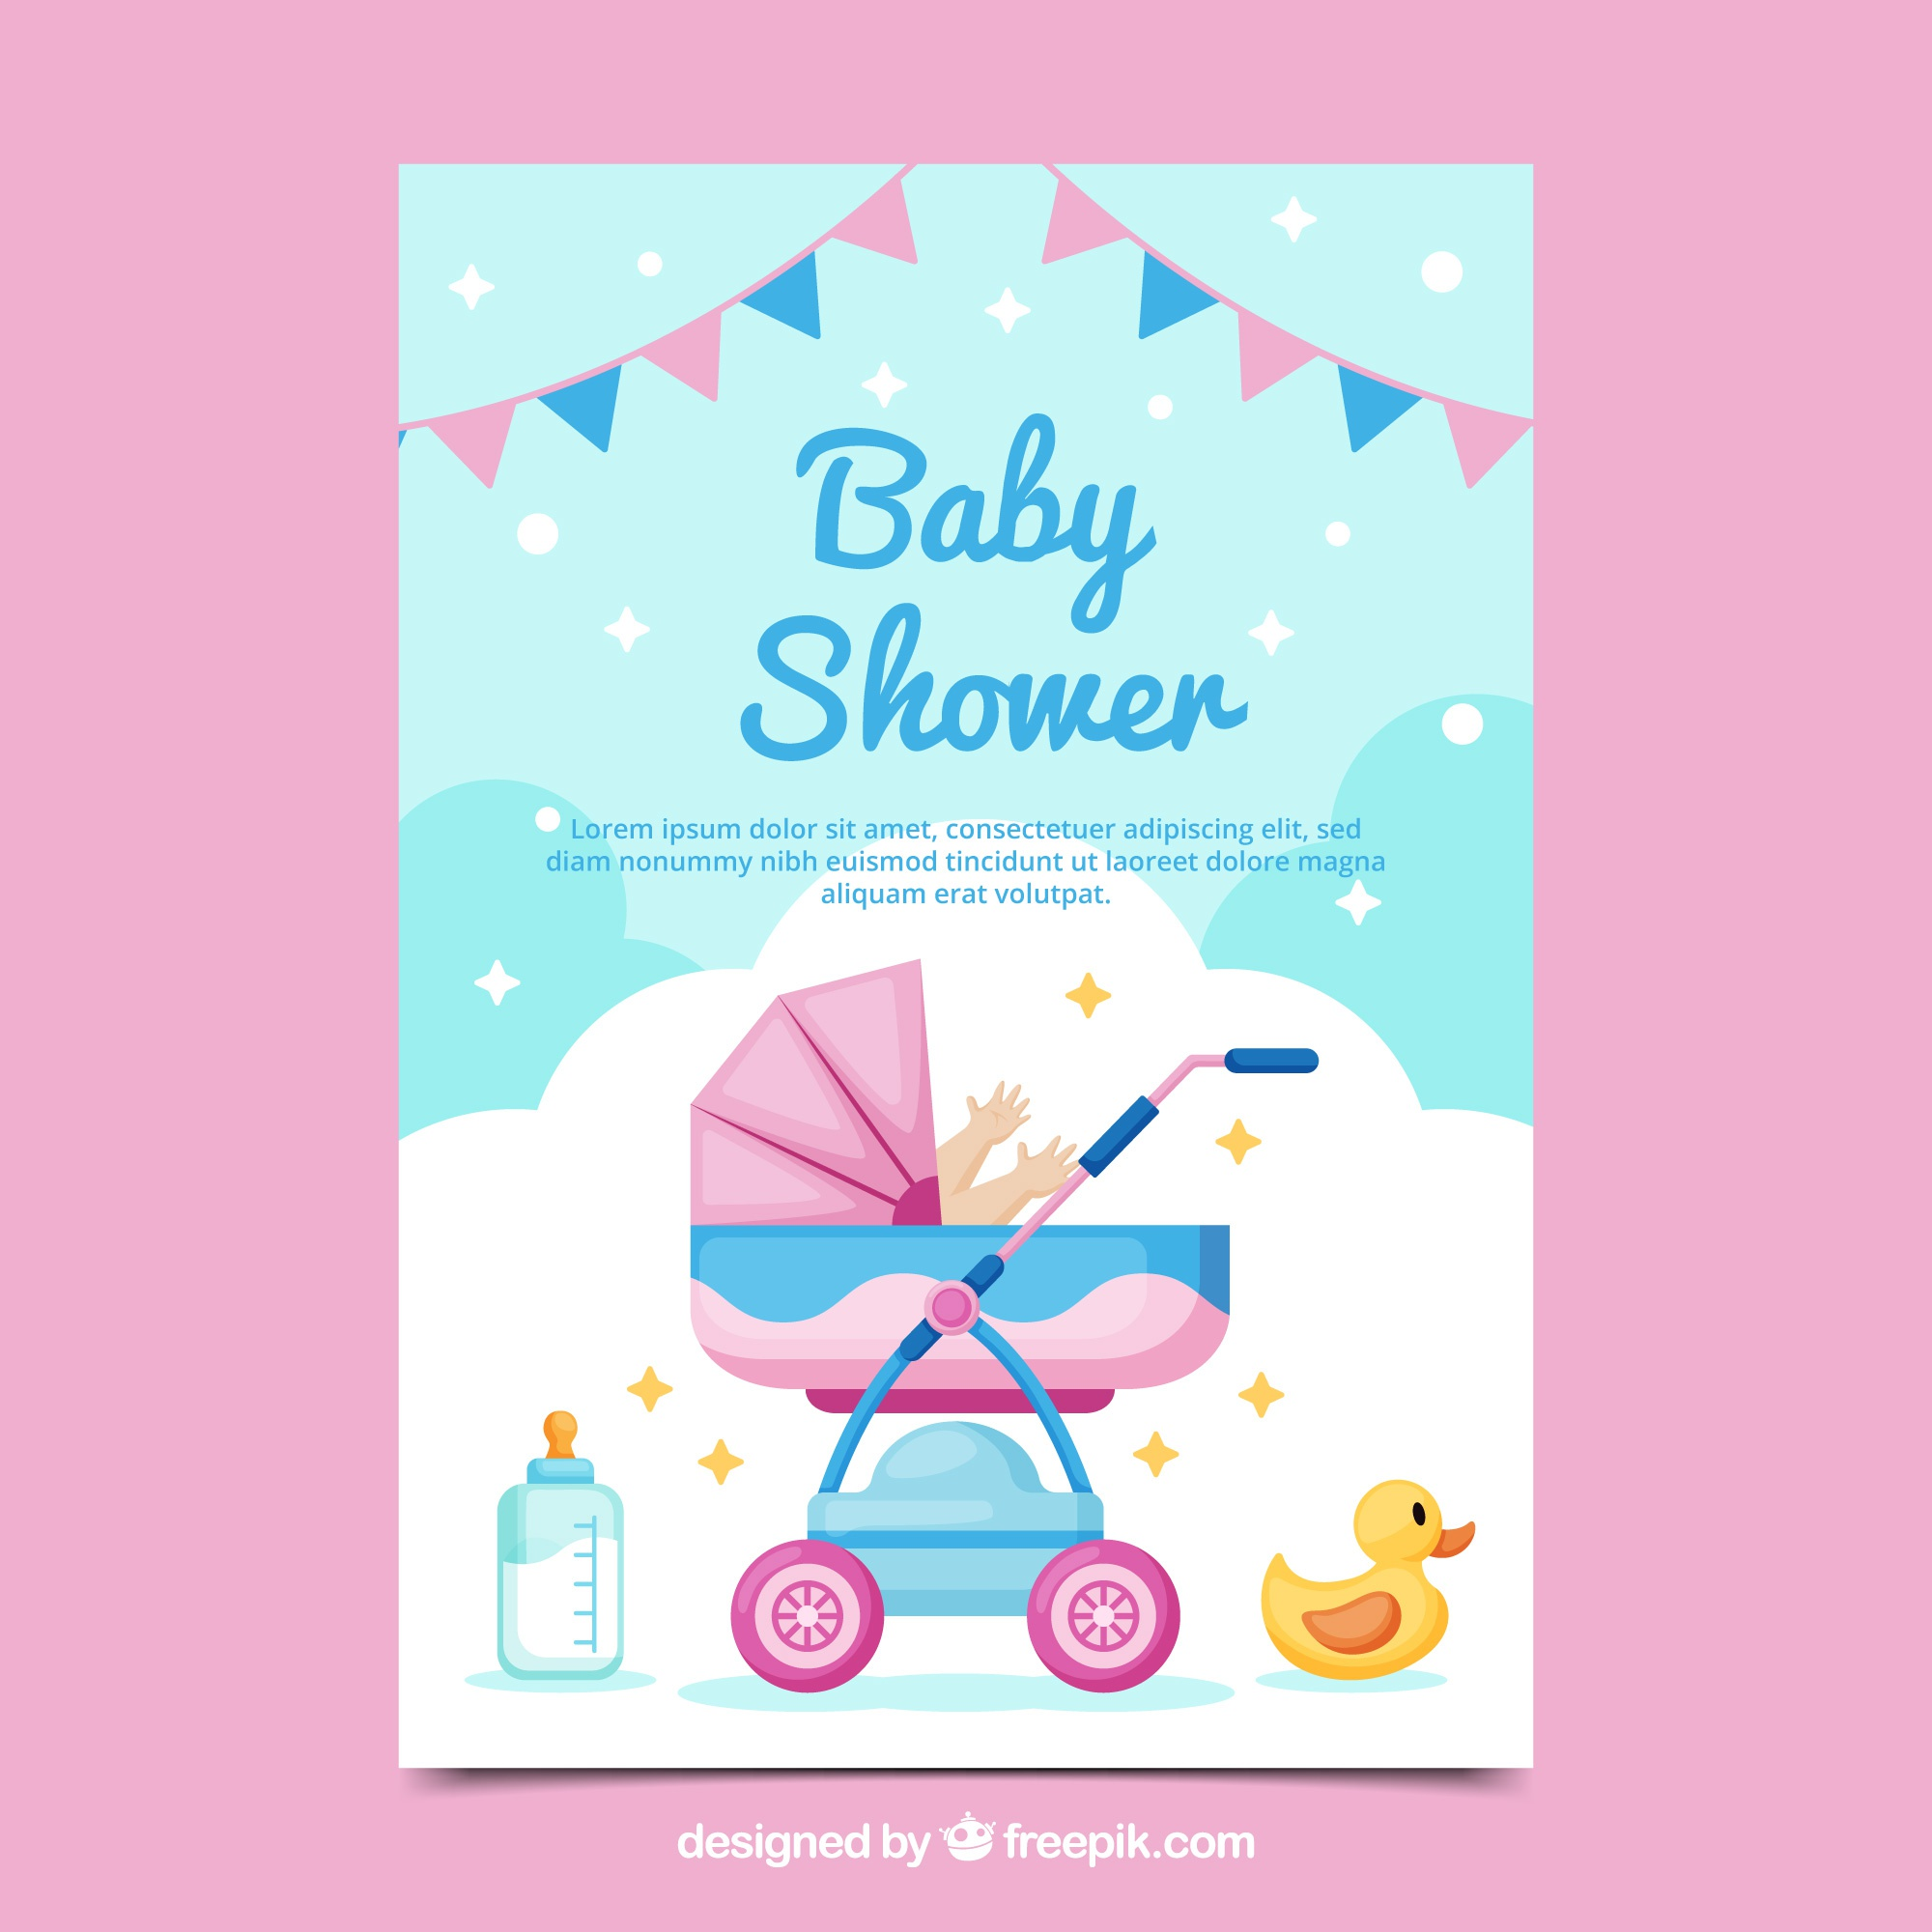 Baby shower card invitation in flat style